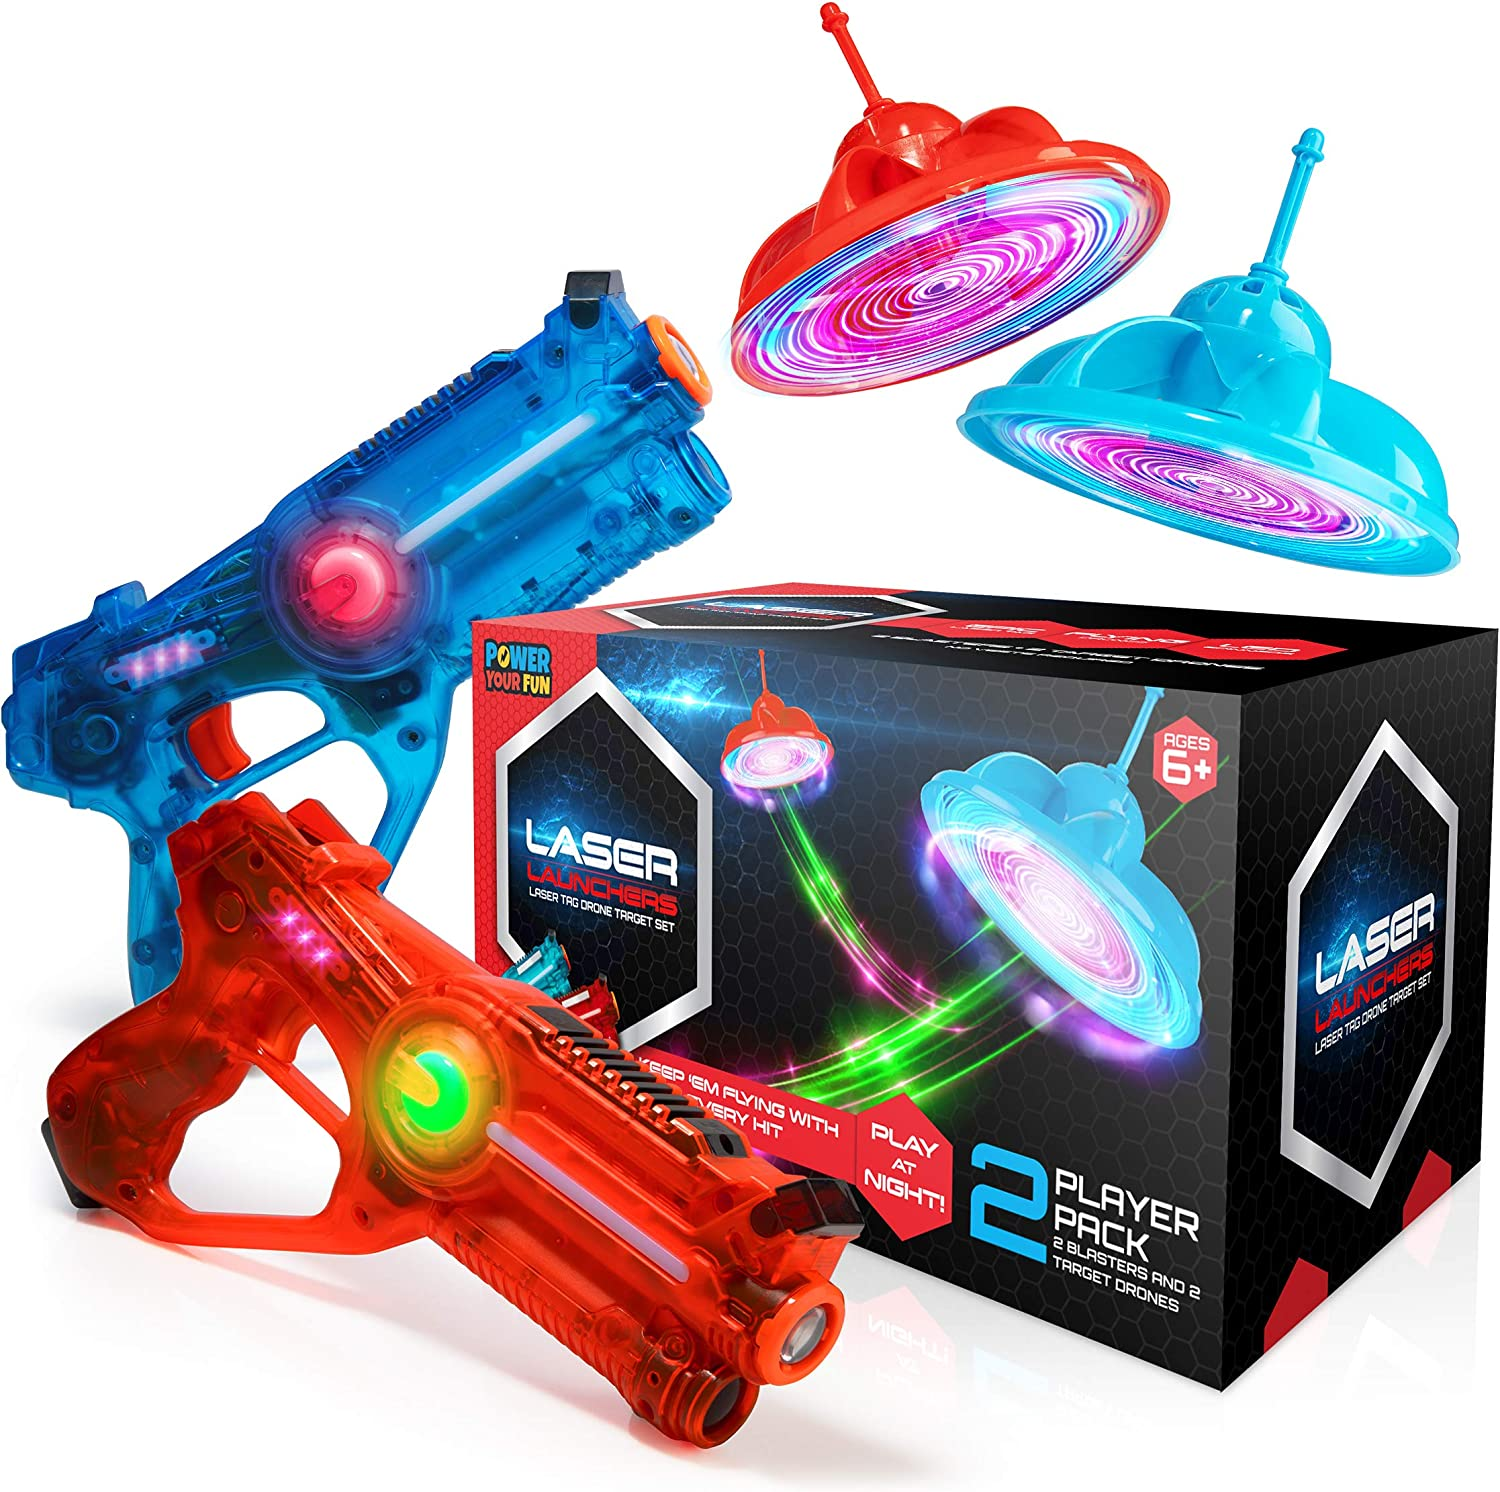 Power Your Fun Laser Launchers Laser Tag for Kids - 2 Player Laser Tag Shooting Games with 2 Toy Guns and 2 Flying Toy Targets